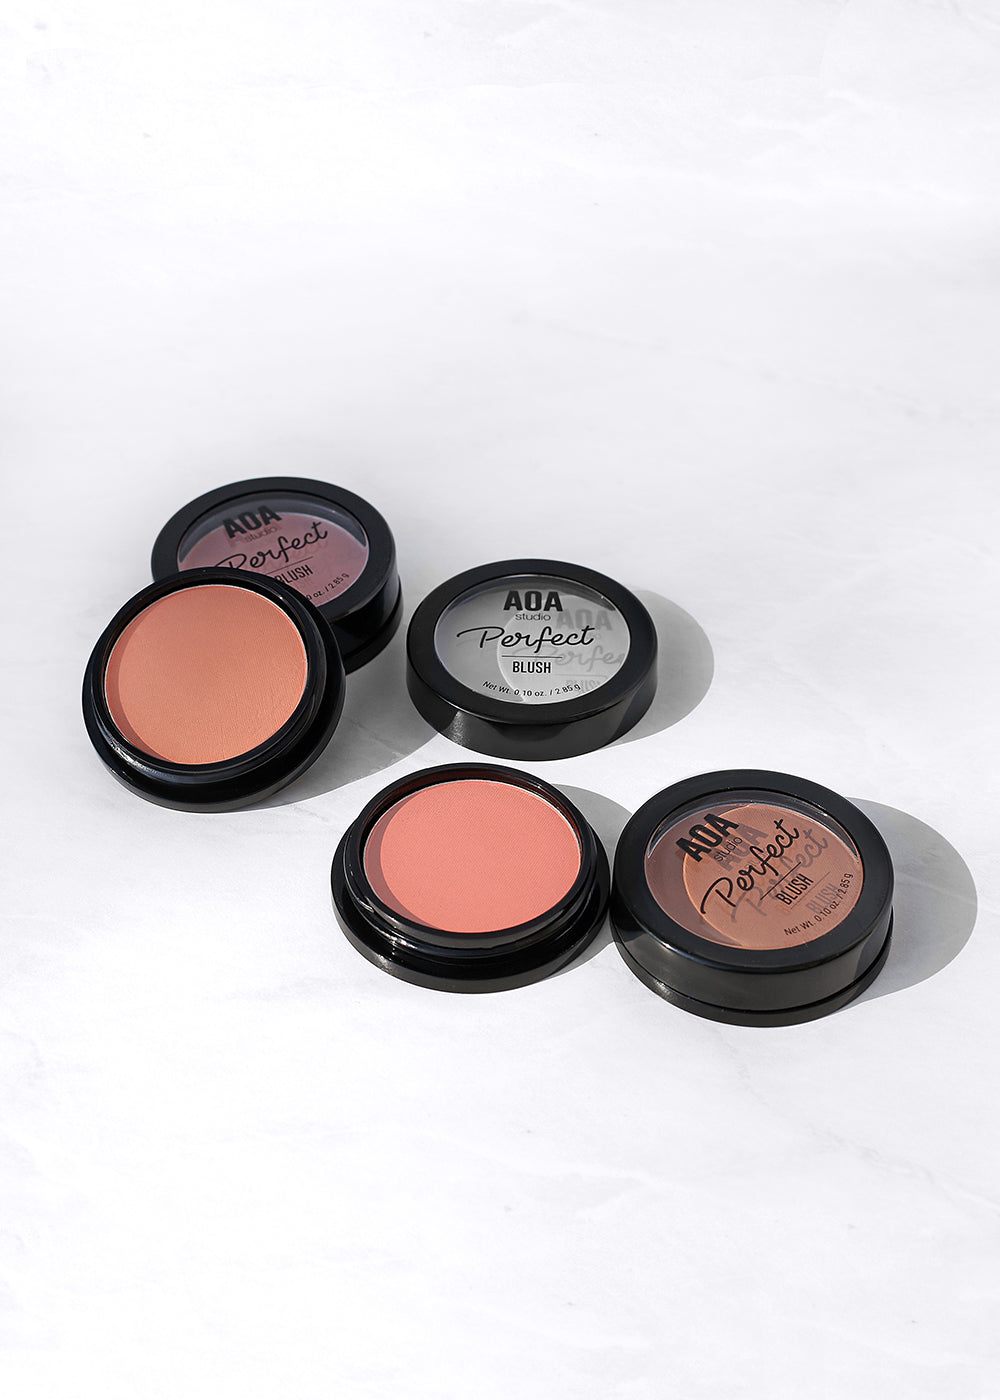 AOA Perfect Powder Blush - Fino